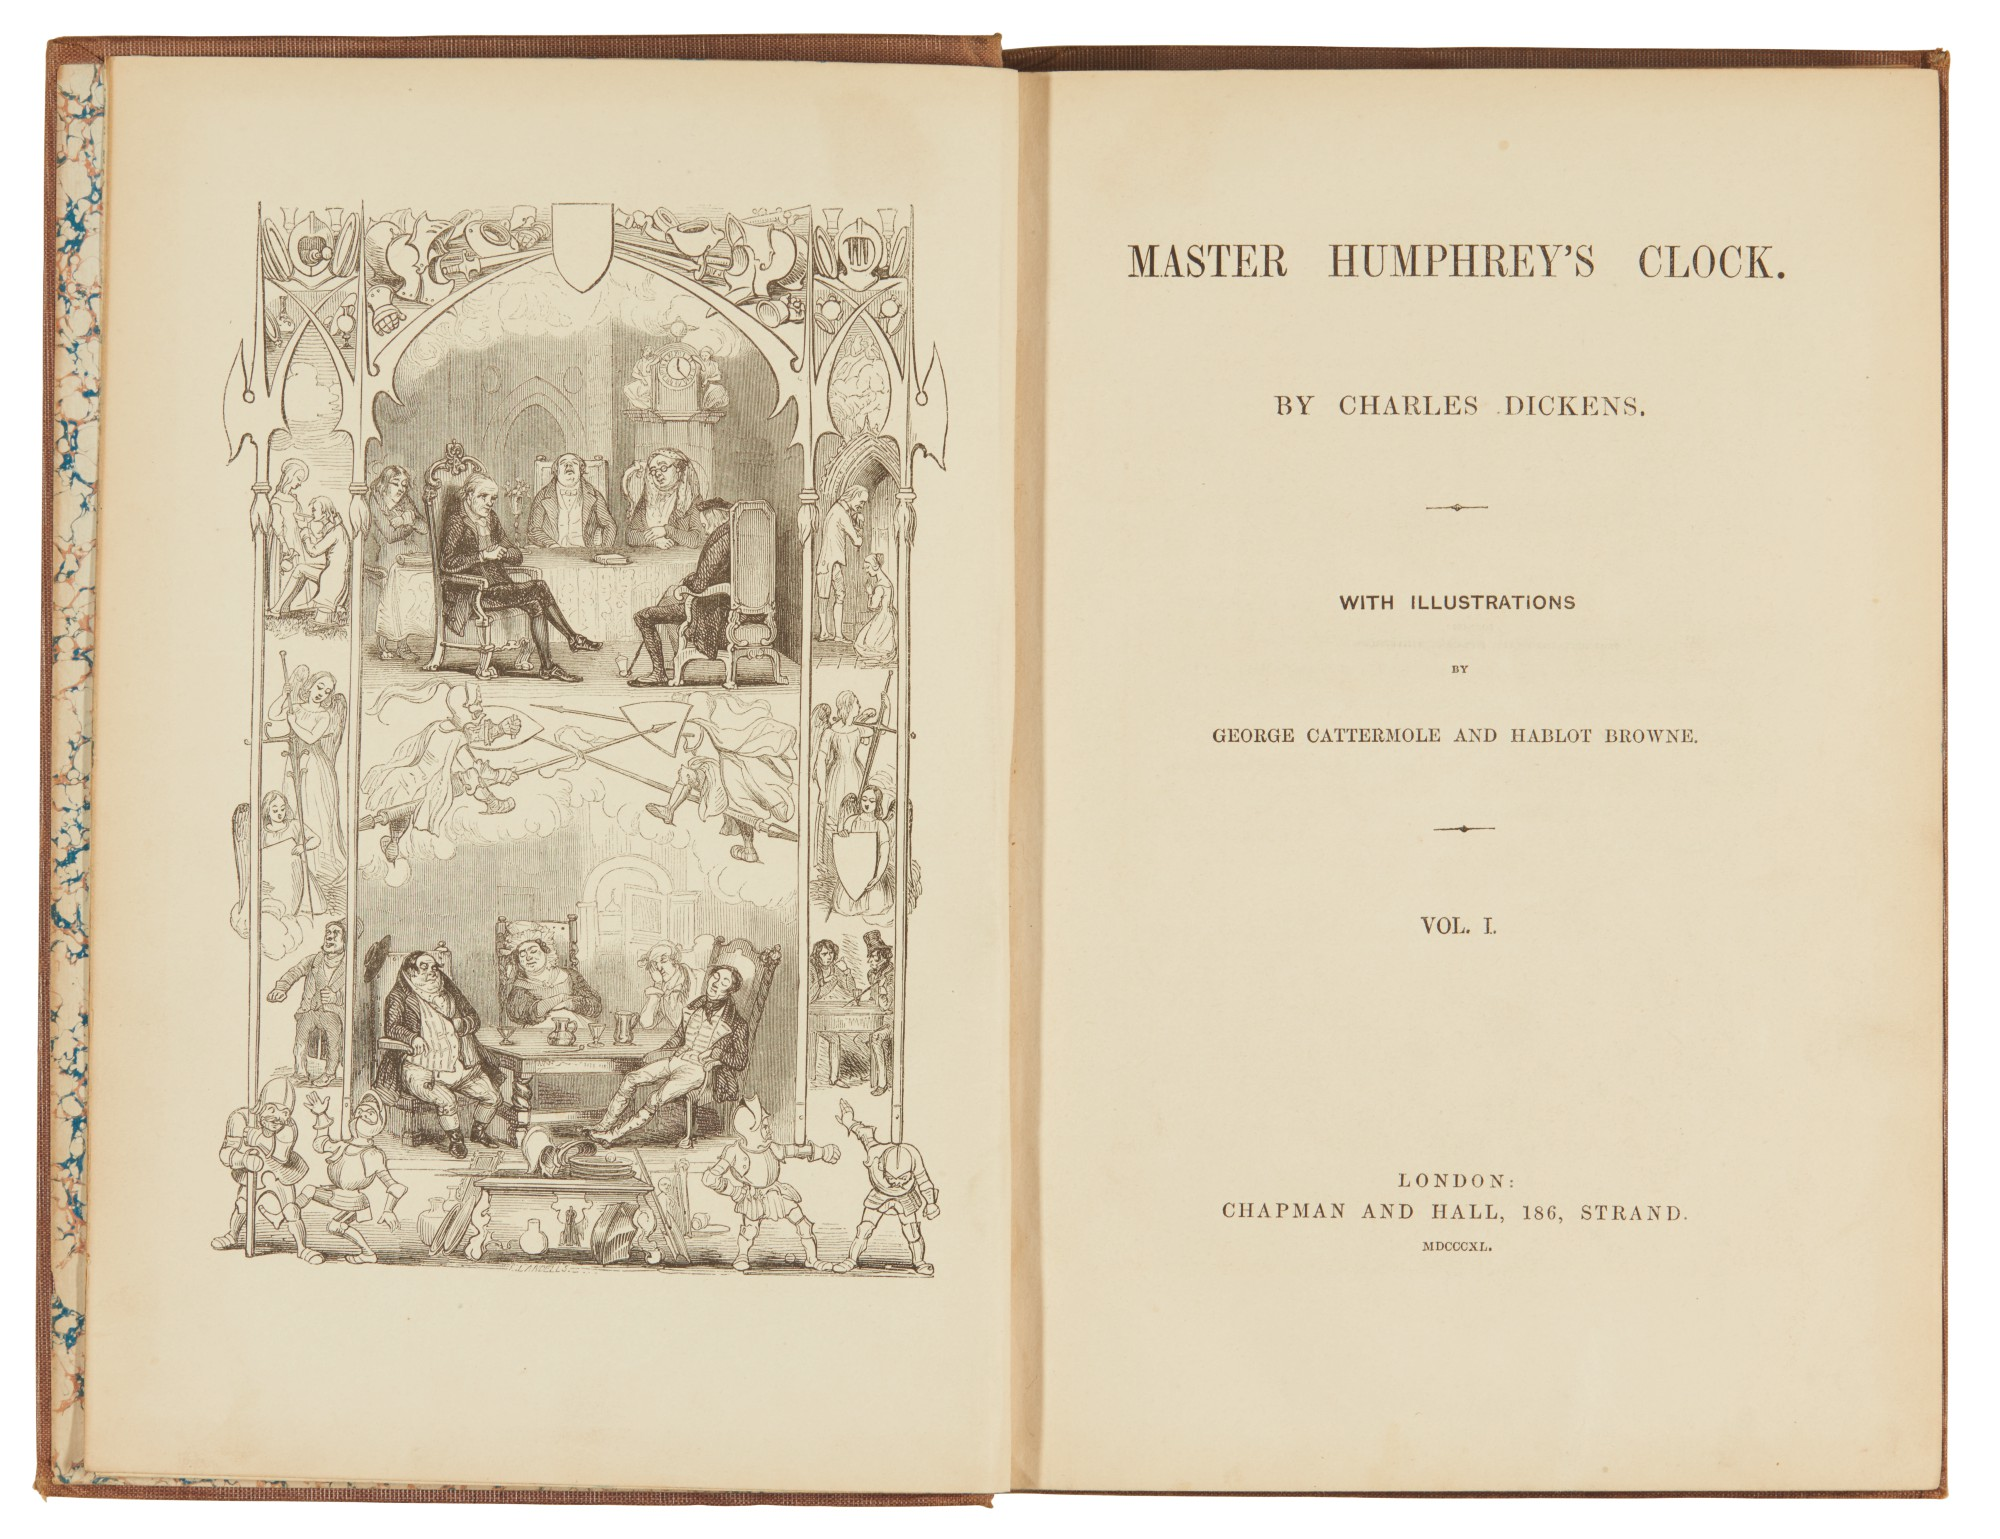 Dickens, Master Humphrey's Clock, 1840-41, first edition in book form, bound from the weekly parts, variant binding